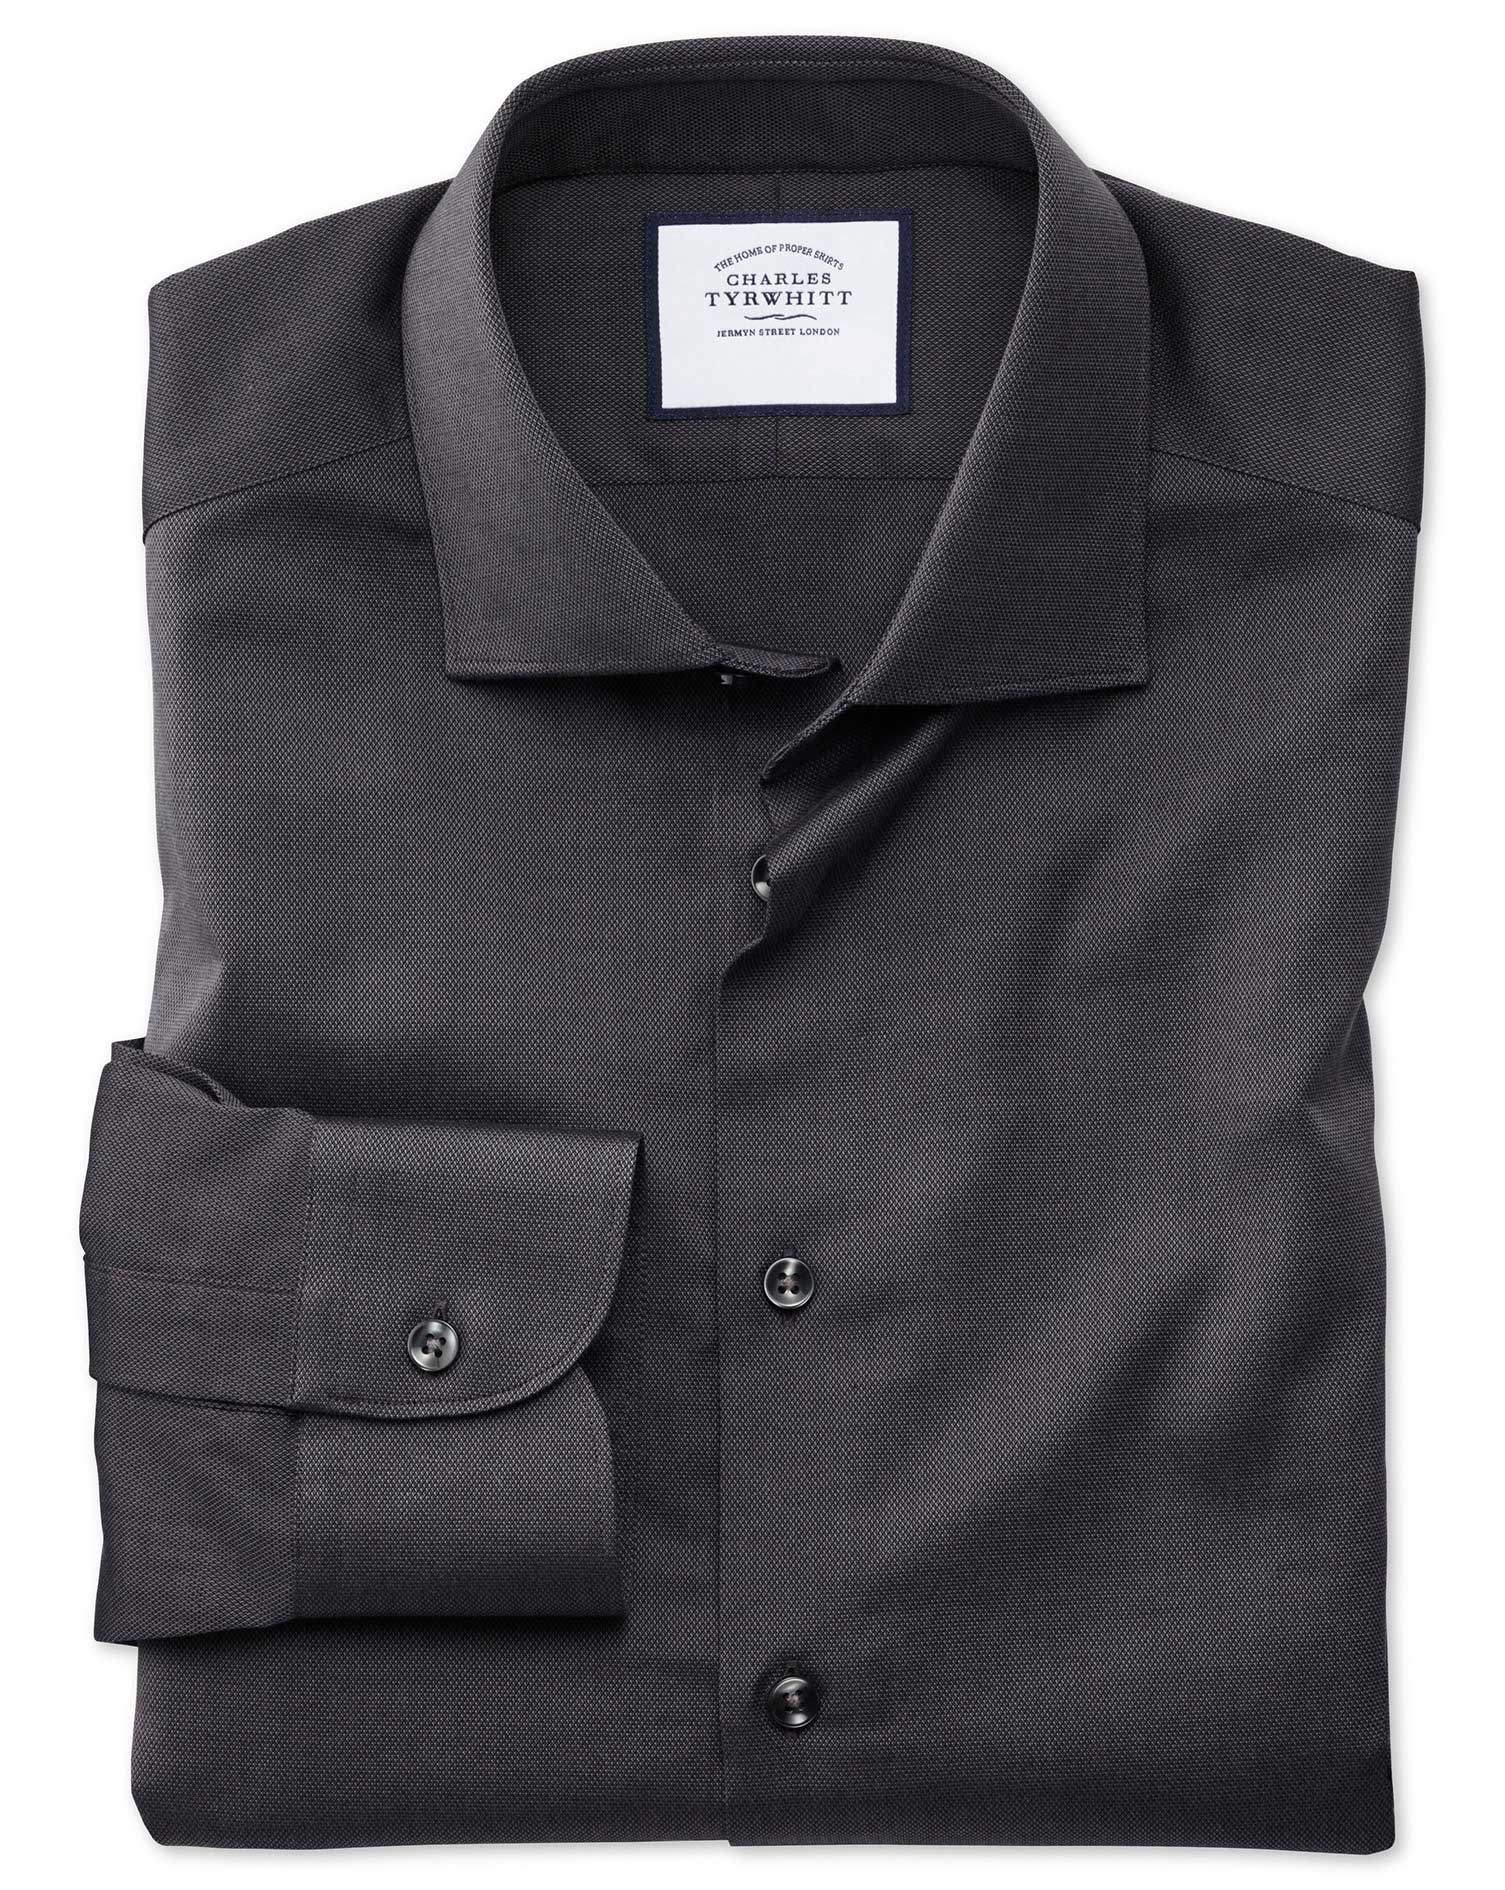 Slim Fit Business Casual Charcoal Royal Oxford Cotton Formal Shirt Single Cuff Size 15.5/32 by Charl